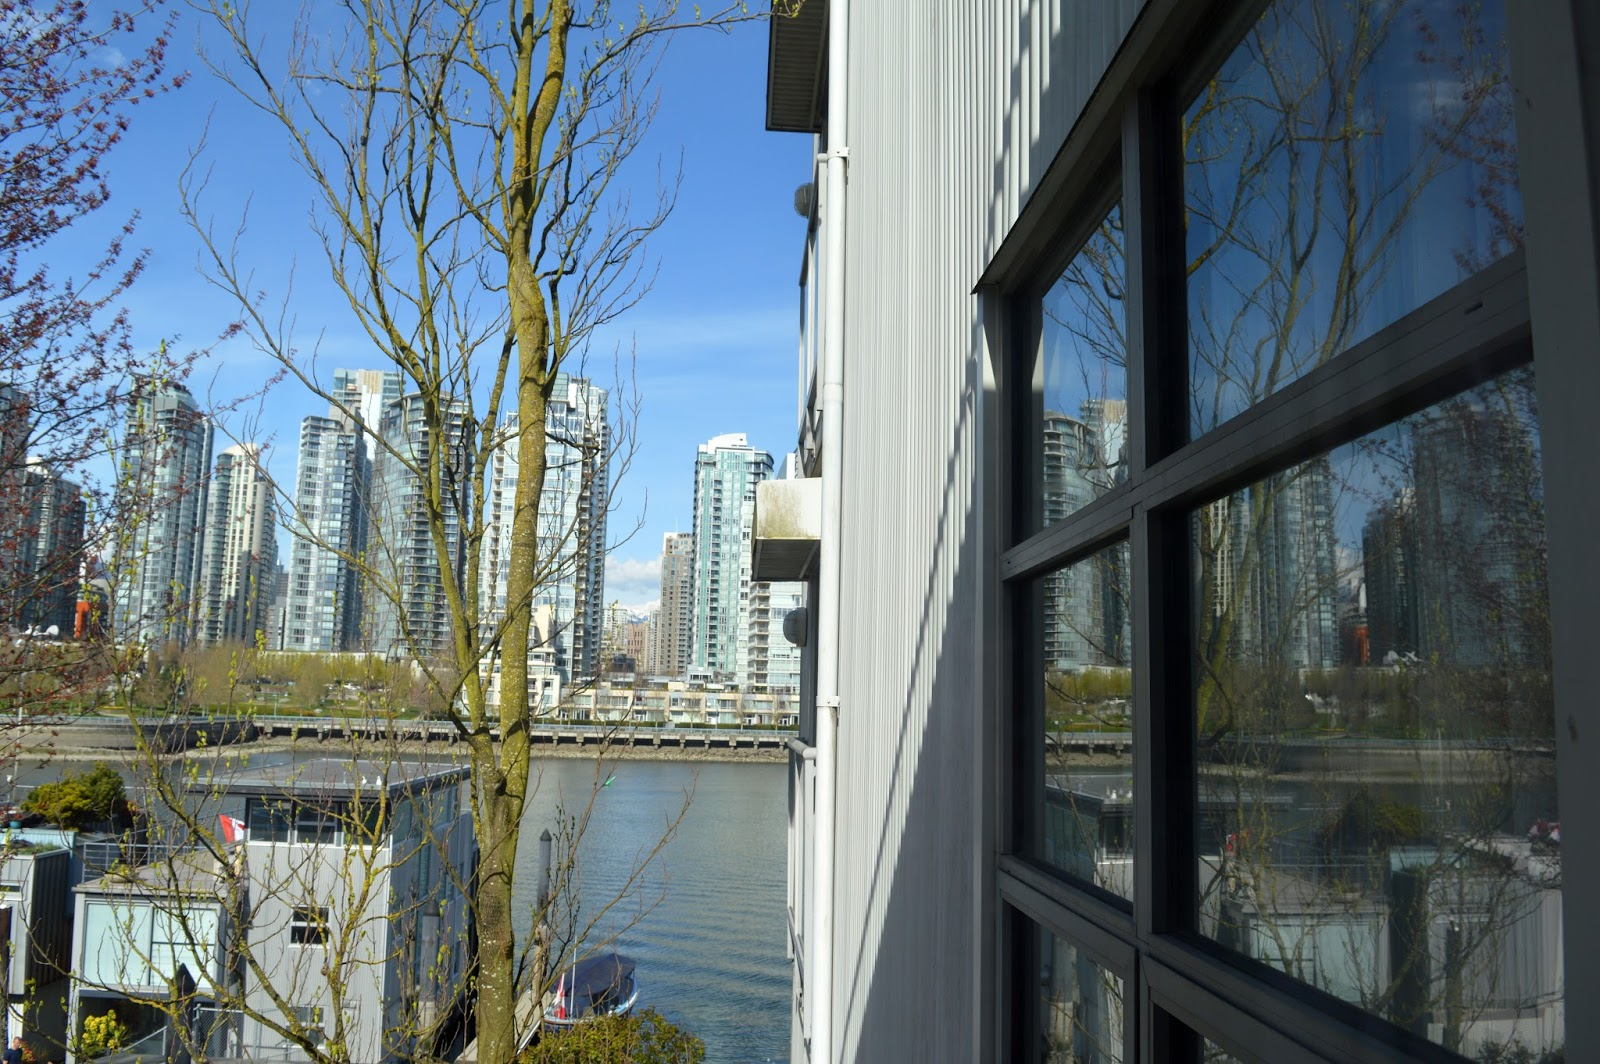 A Stay At Granville Island Hotel With Room Service From